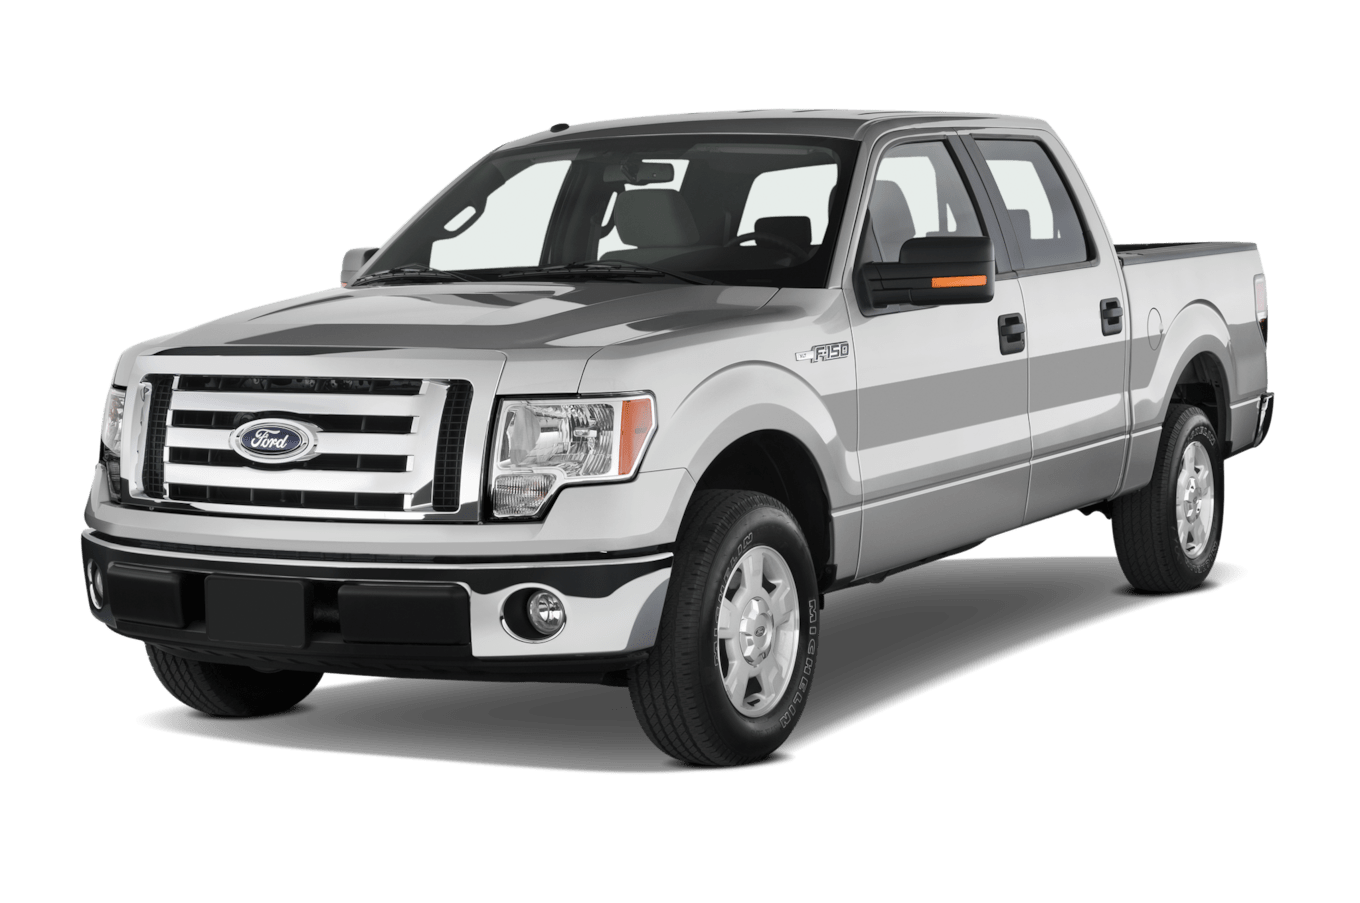 hight resolution of 2010 ford f 150 reviews research f 150 prices specs ford f 150 4 6l engine diagram car tuning